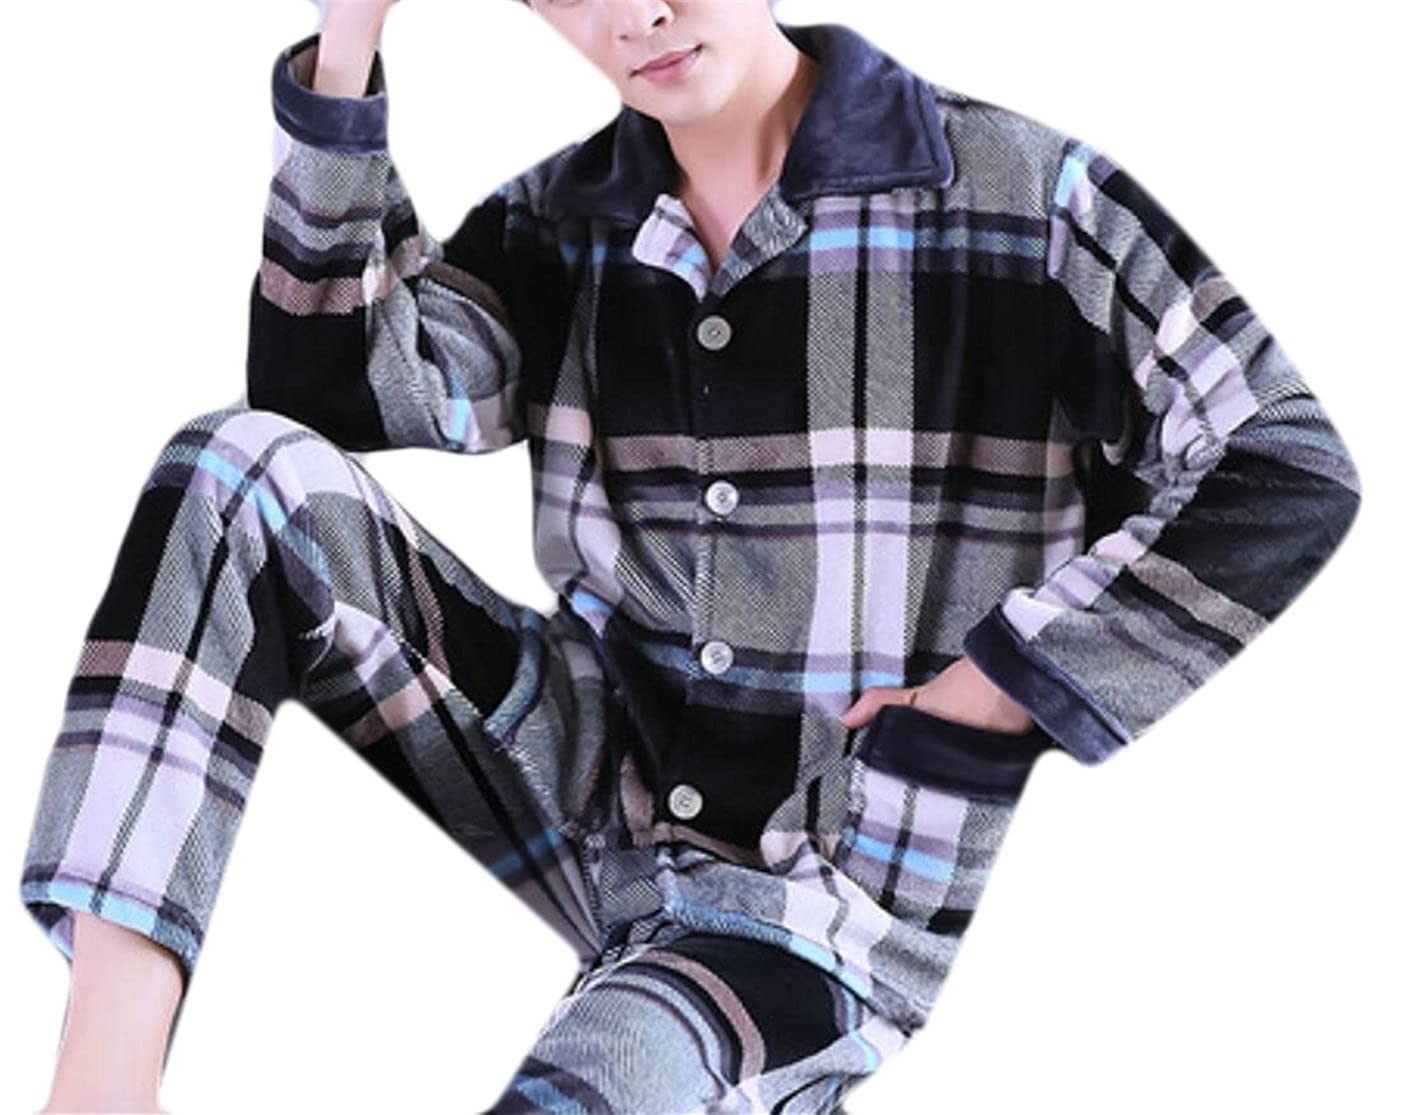 SYTX Men's Button Front Plaid Flannel Fleece Pant Soft Pajama Set Sleepwear